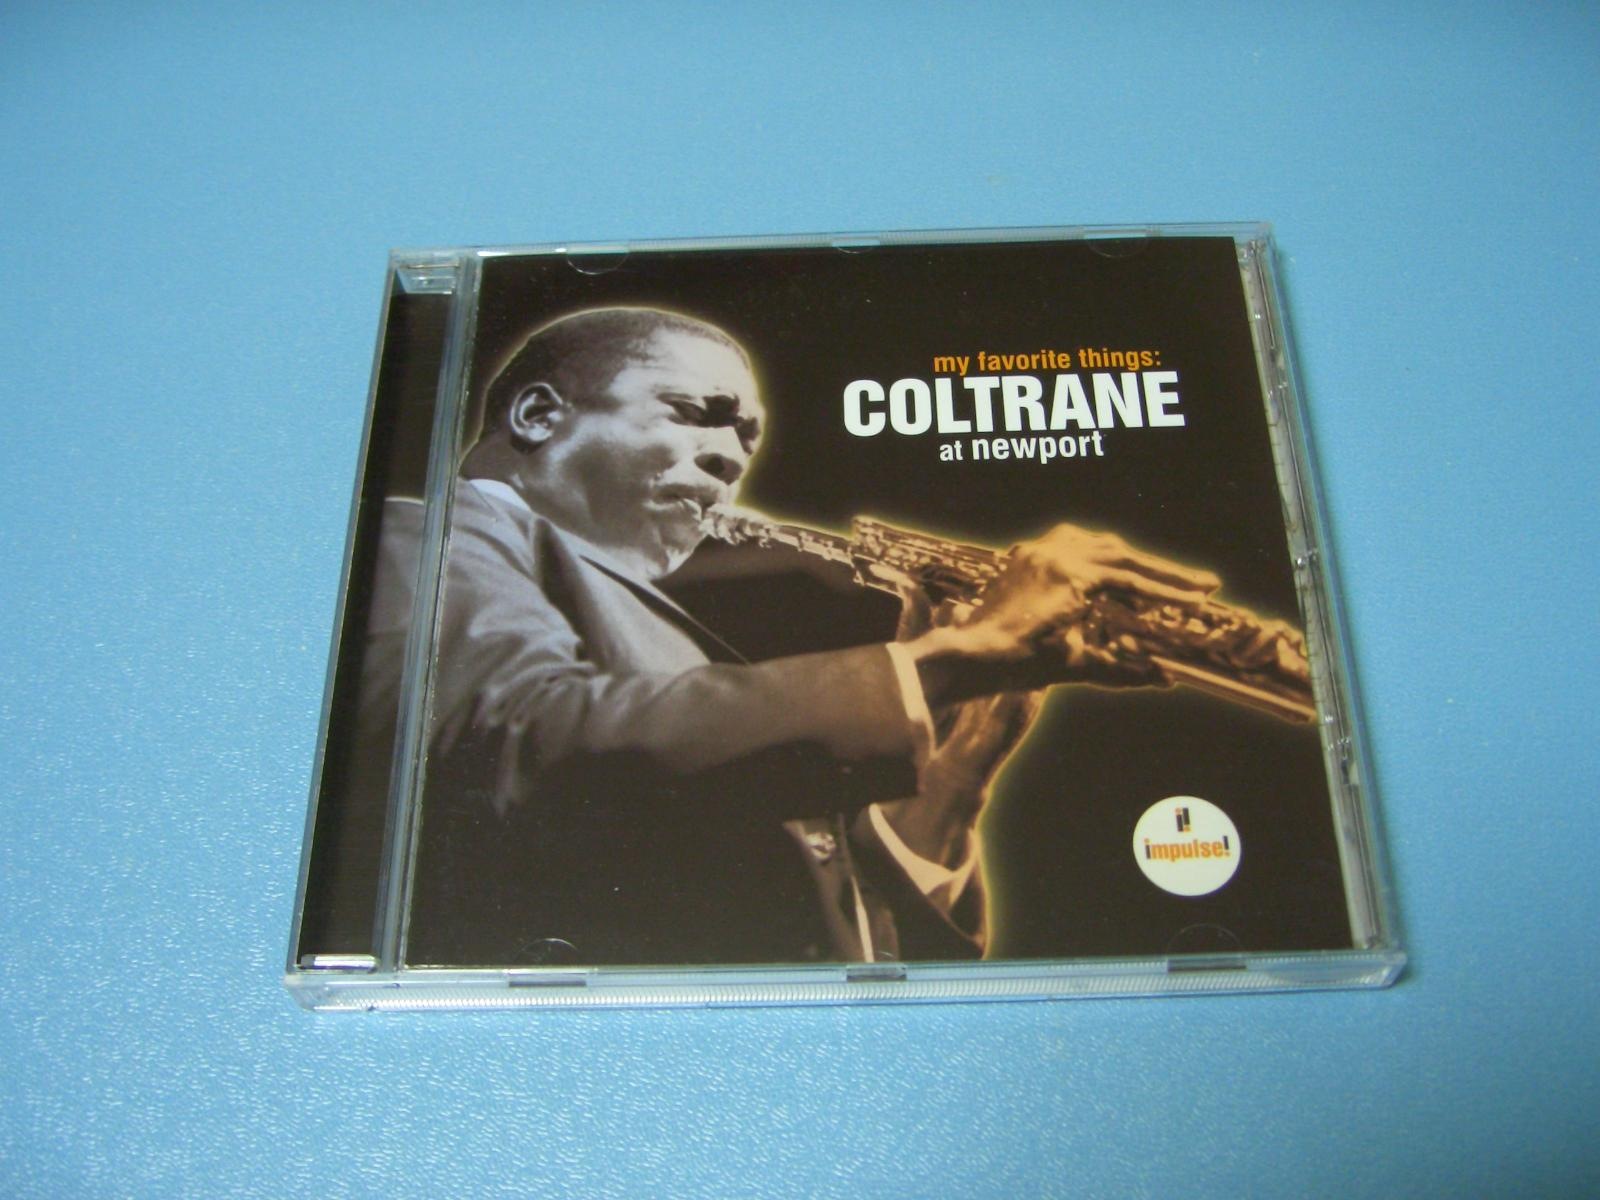 John Coltrane / My Favorite Things: Coltrane at Newport_c0062649_23212461.jpg